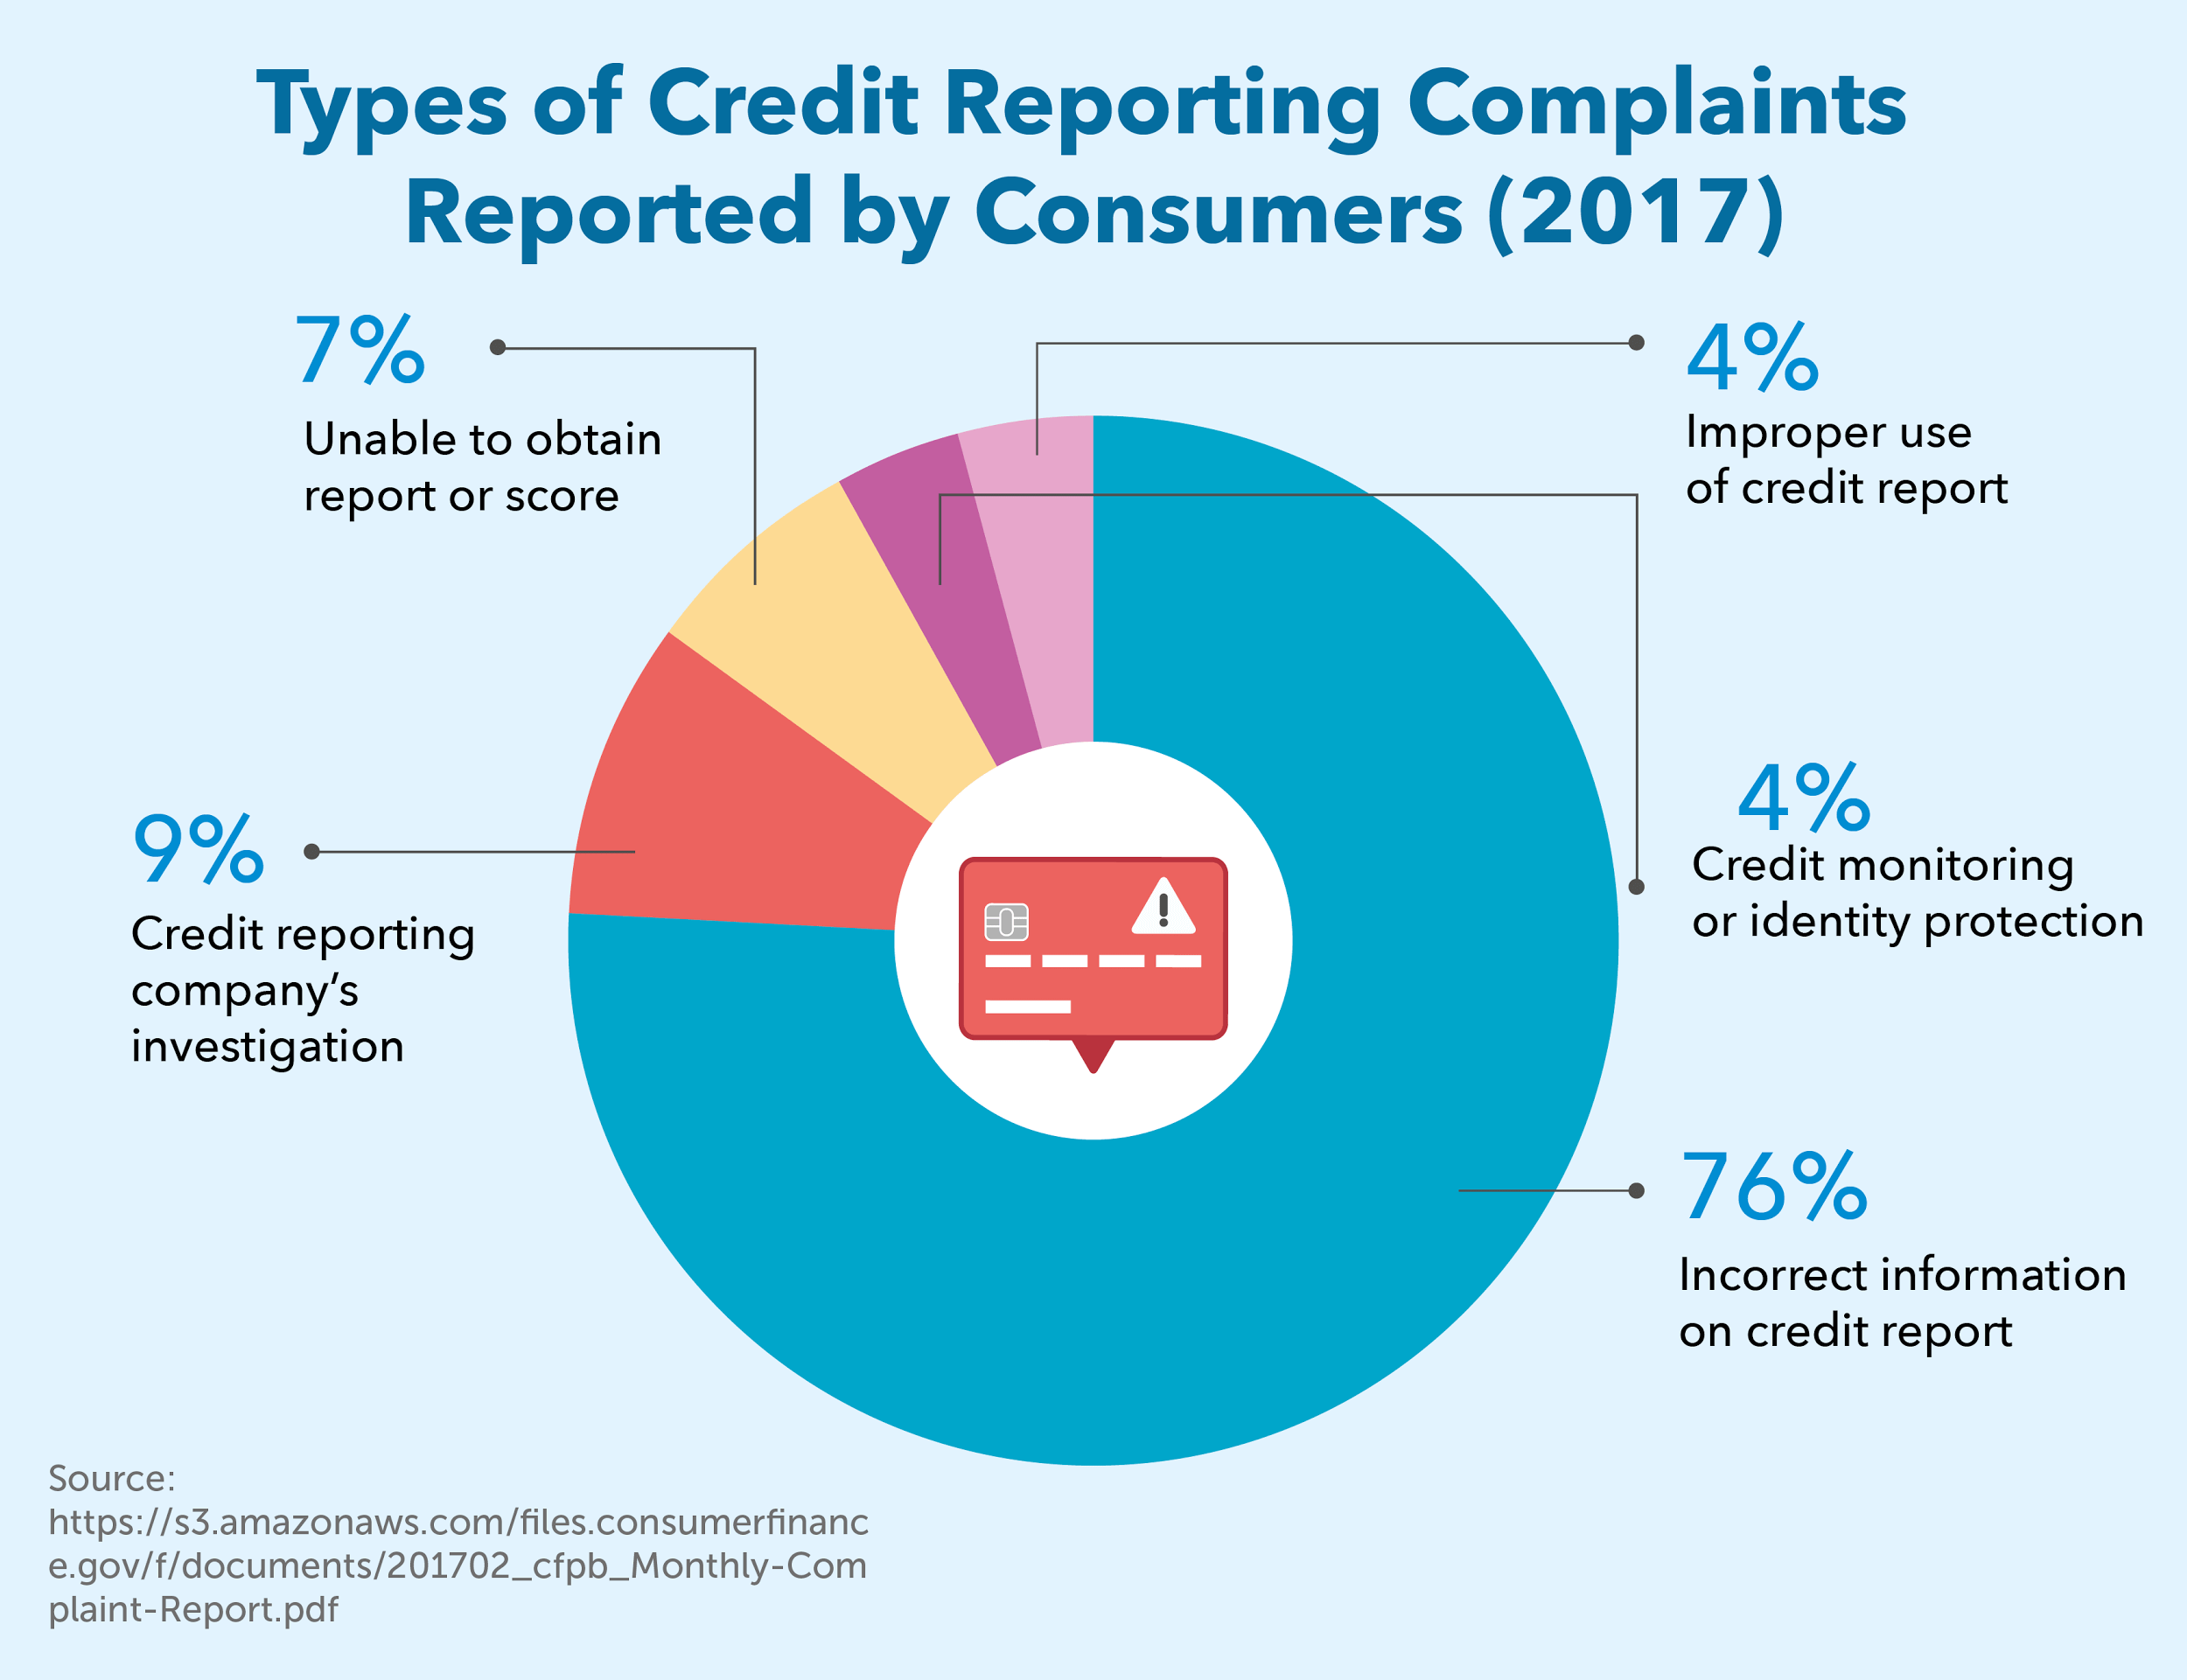 Types of Credit Reporting Complaints Reported by Consumers (2017)